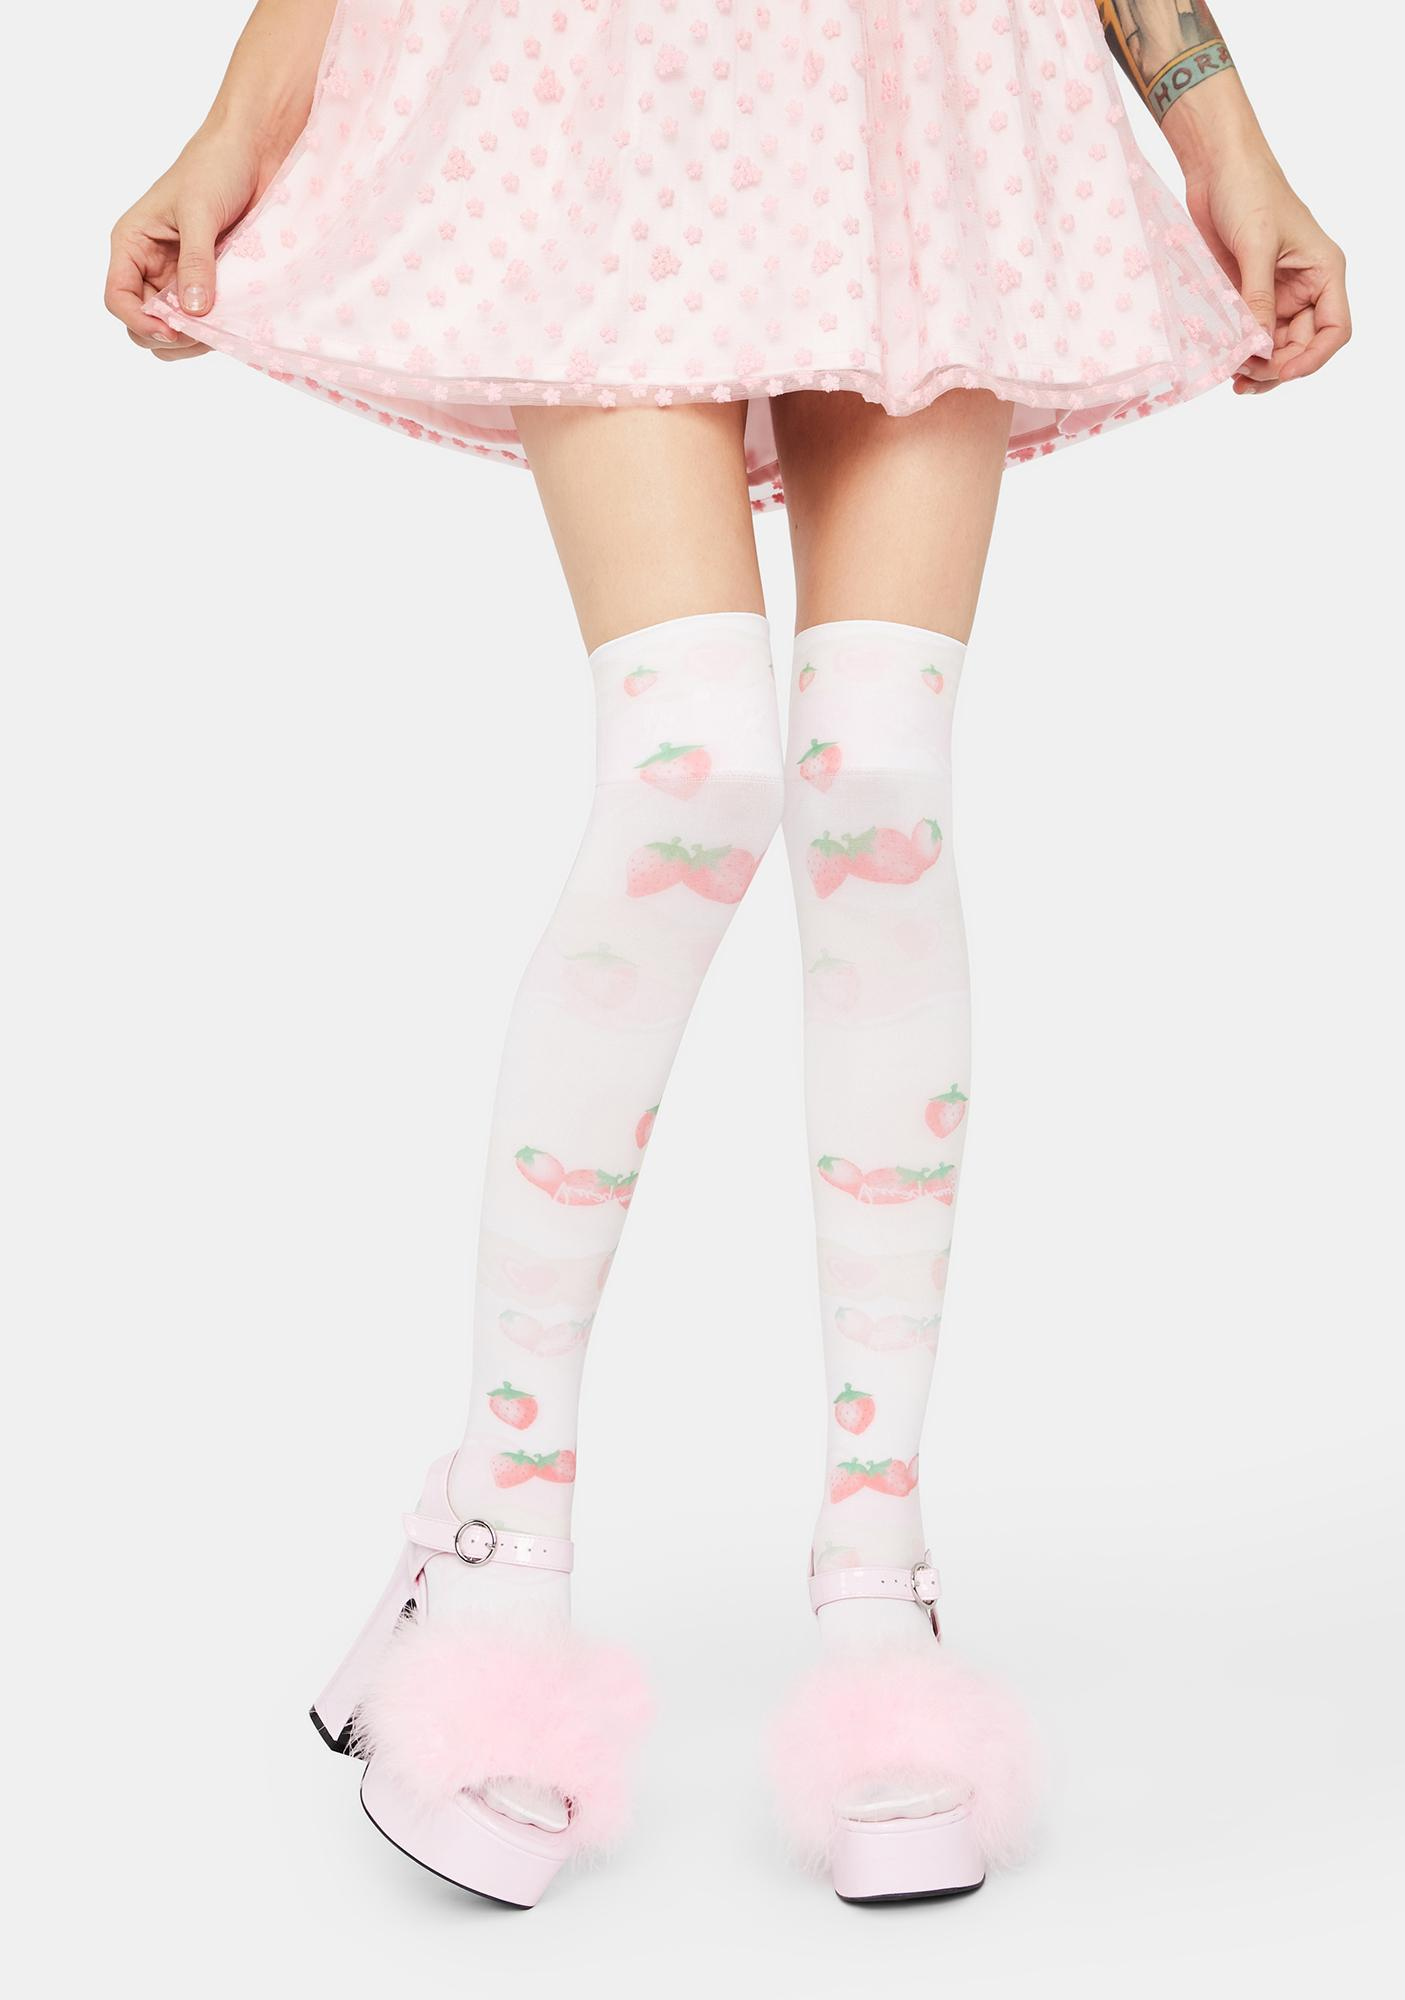 Sweet To Eat Thigh High Tights